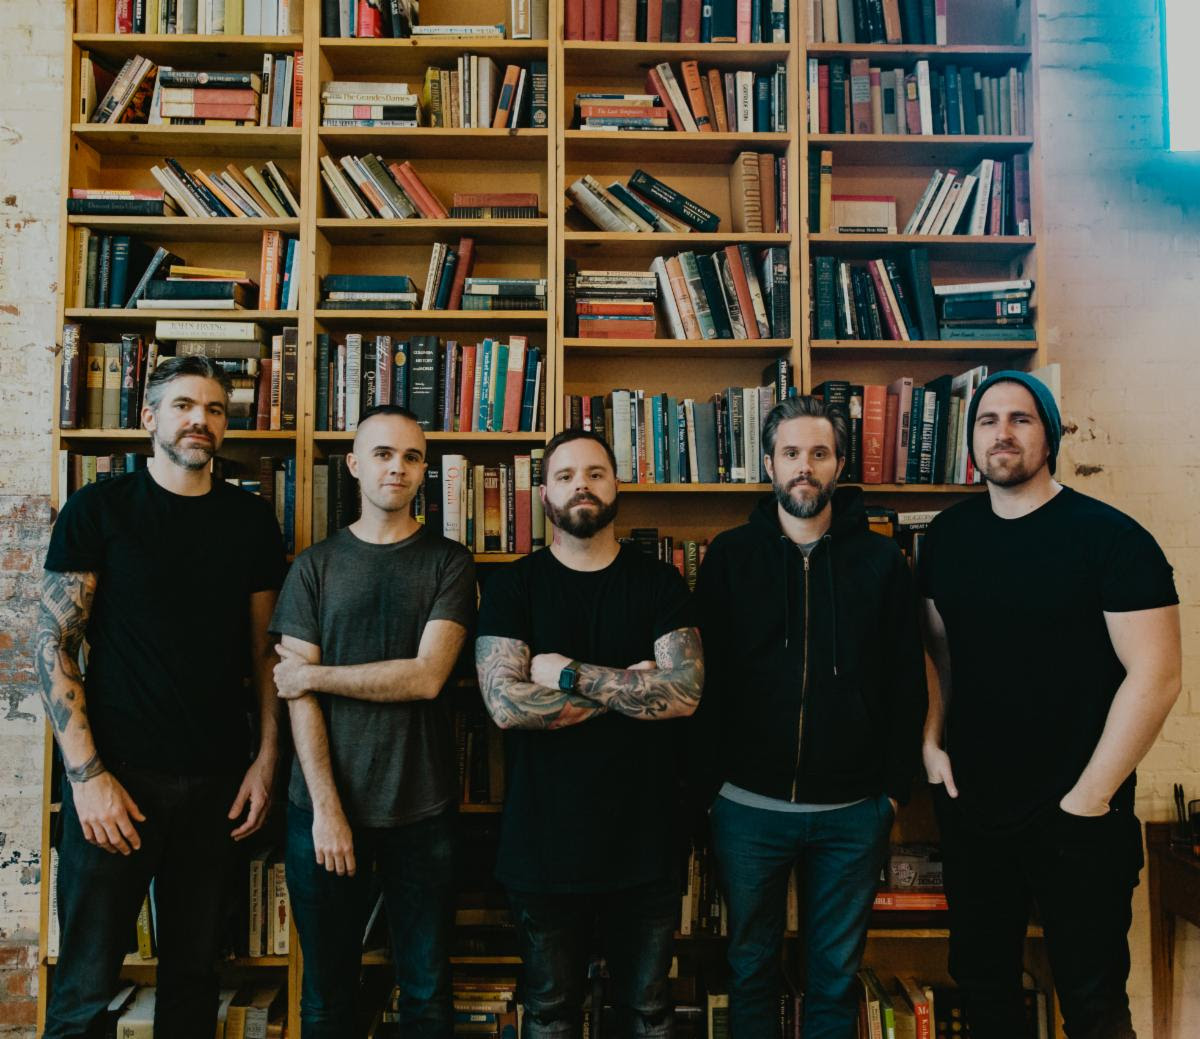 IMPRINTent, IMPRINT Entertainment, YOUR CULTURE HUB, Between The Buried And Me, Charley Bezer, Sumerian Records, Sirius XM, iTunes, Paul Waggoner, Dustie Waring, Blake Richardson, Tommy Rogers, New Music Releases, Entertainment News,